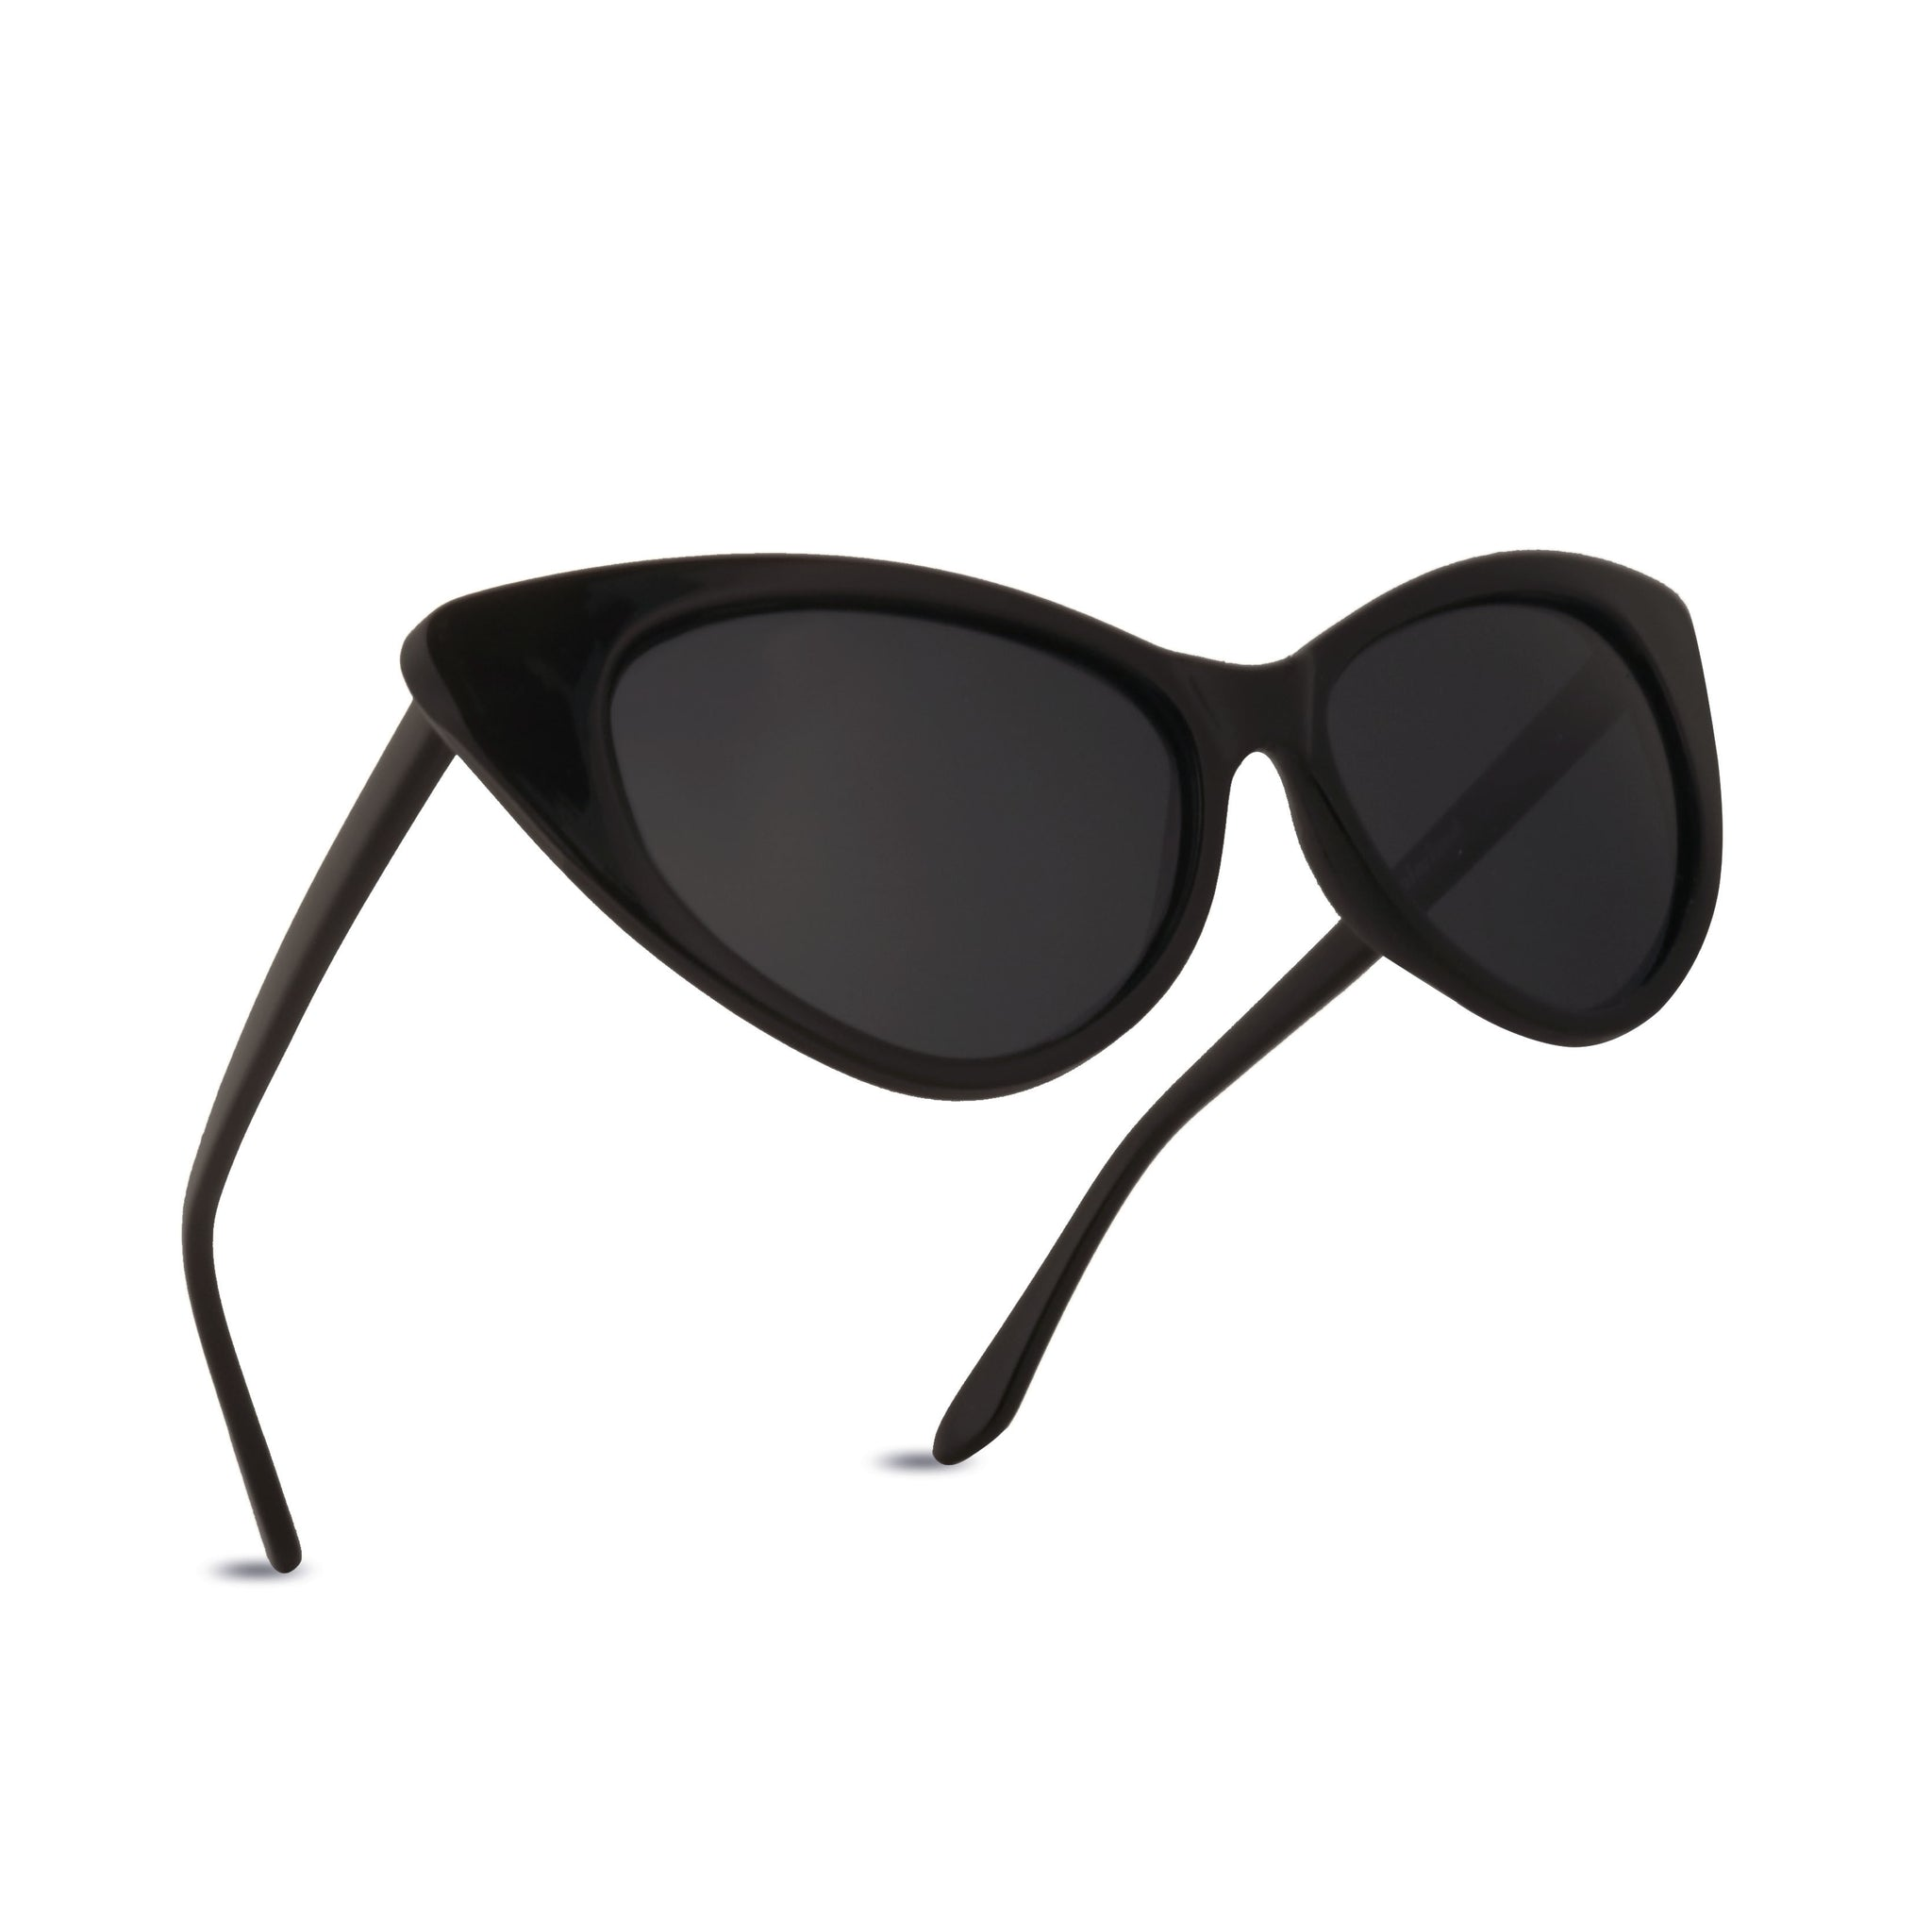 OLIVIA Polarized Cateye Sunglasses UV400 Exaggerated Retro Vintage Frame Trendy Fashion Shades